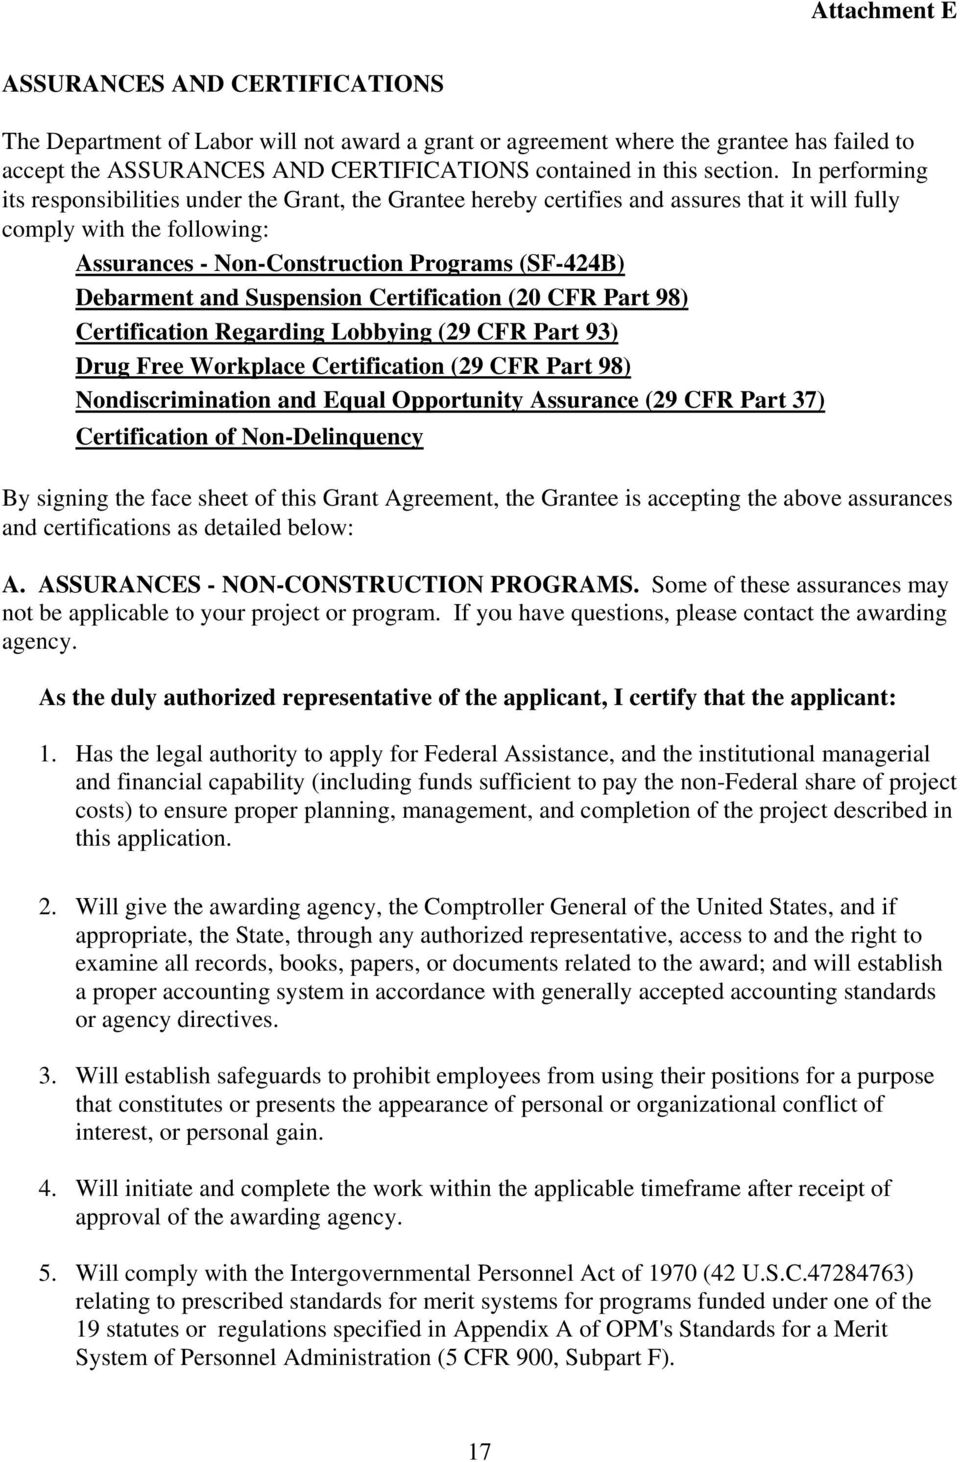 and Suspension Certification (20 CFR Part 98) Certification Regarding Lobbying (29 CFR Part 93) Drug Free Workplace Certification (29 CFR Part 98) Nondiscrimination and Equal Opportunity Assurance